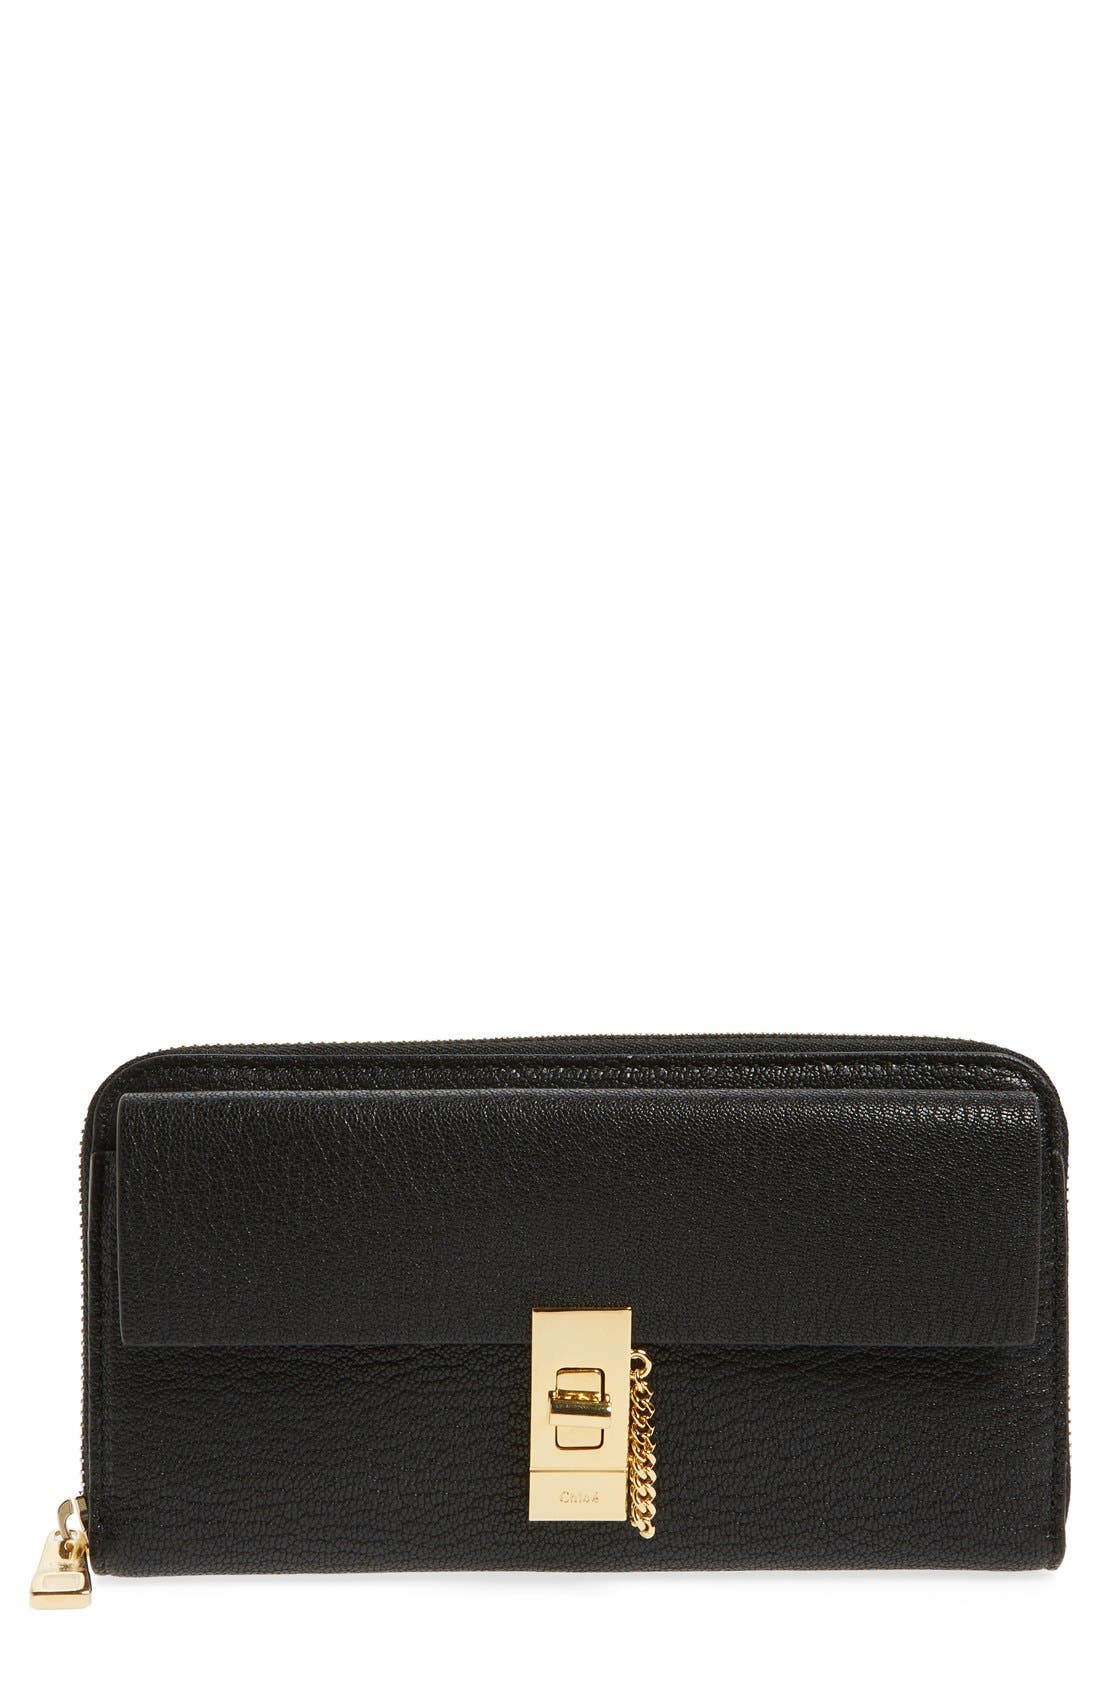 'Drew' Calfskin Leather Zip Around Wallet,                             Main thumbnail 1, color,                             001